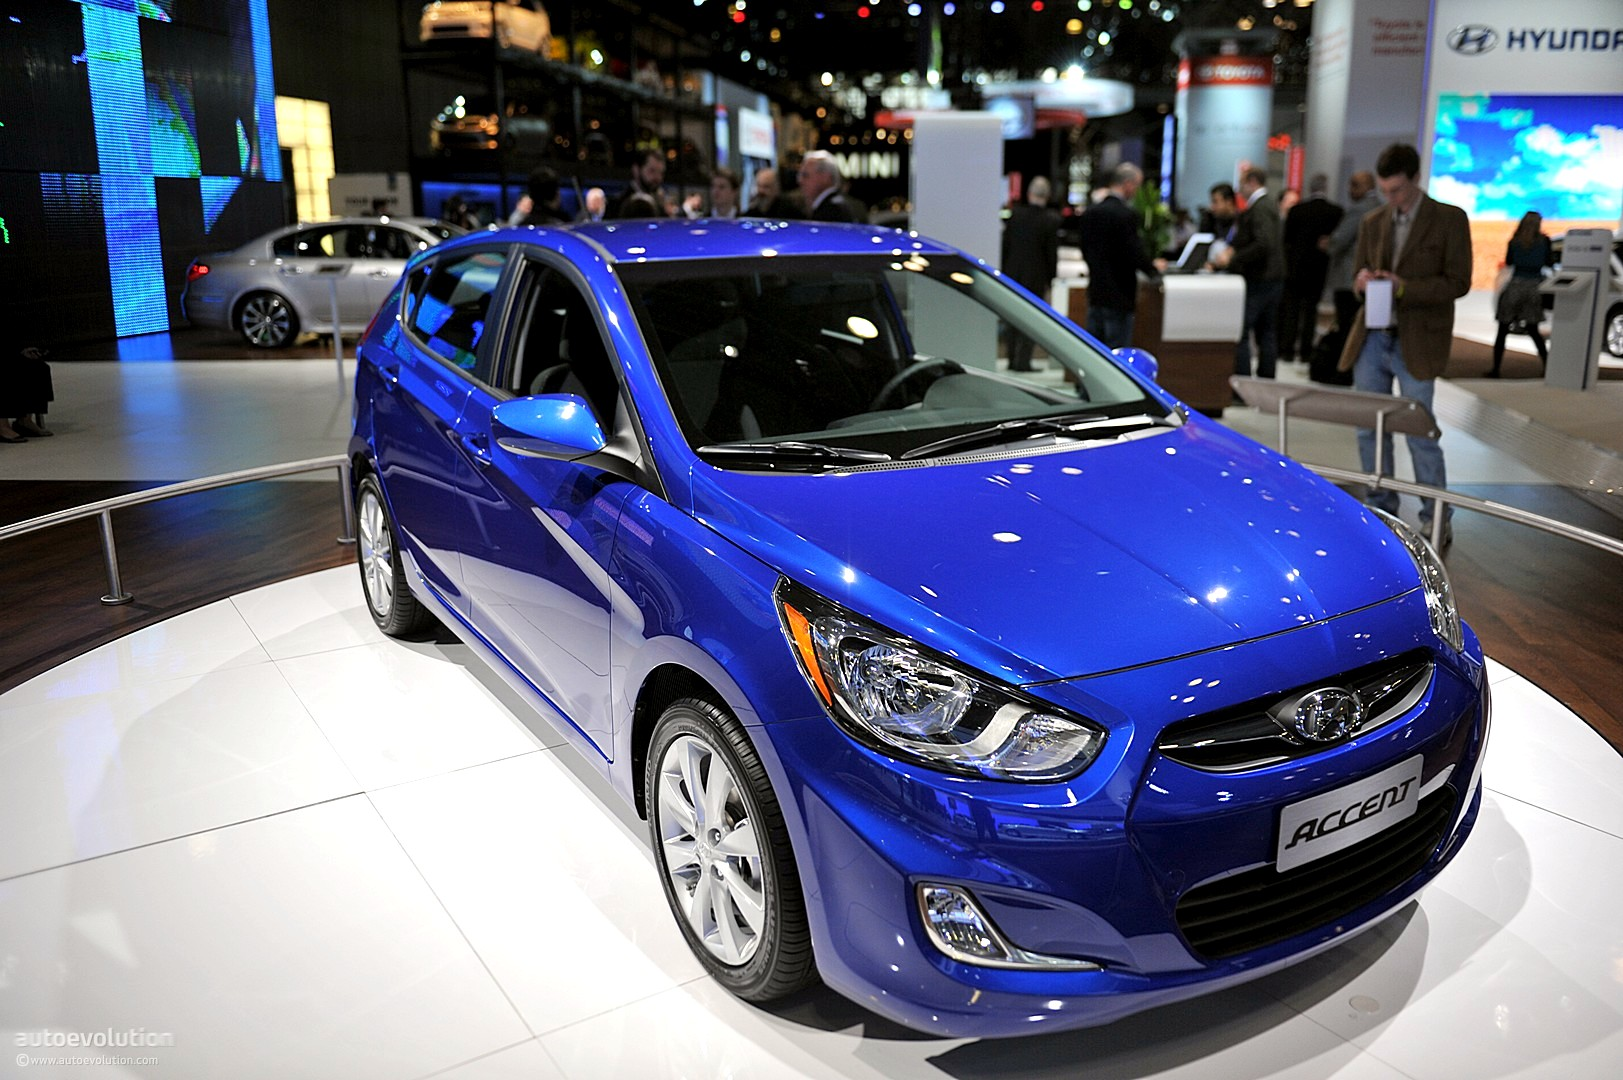 Nyias 2011 Hyundai Accent Live Photos Autoevolution